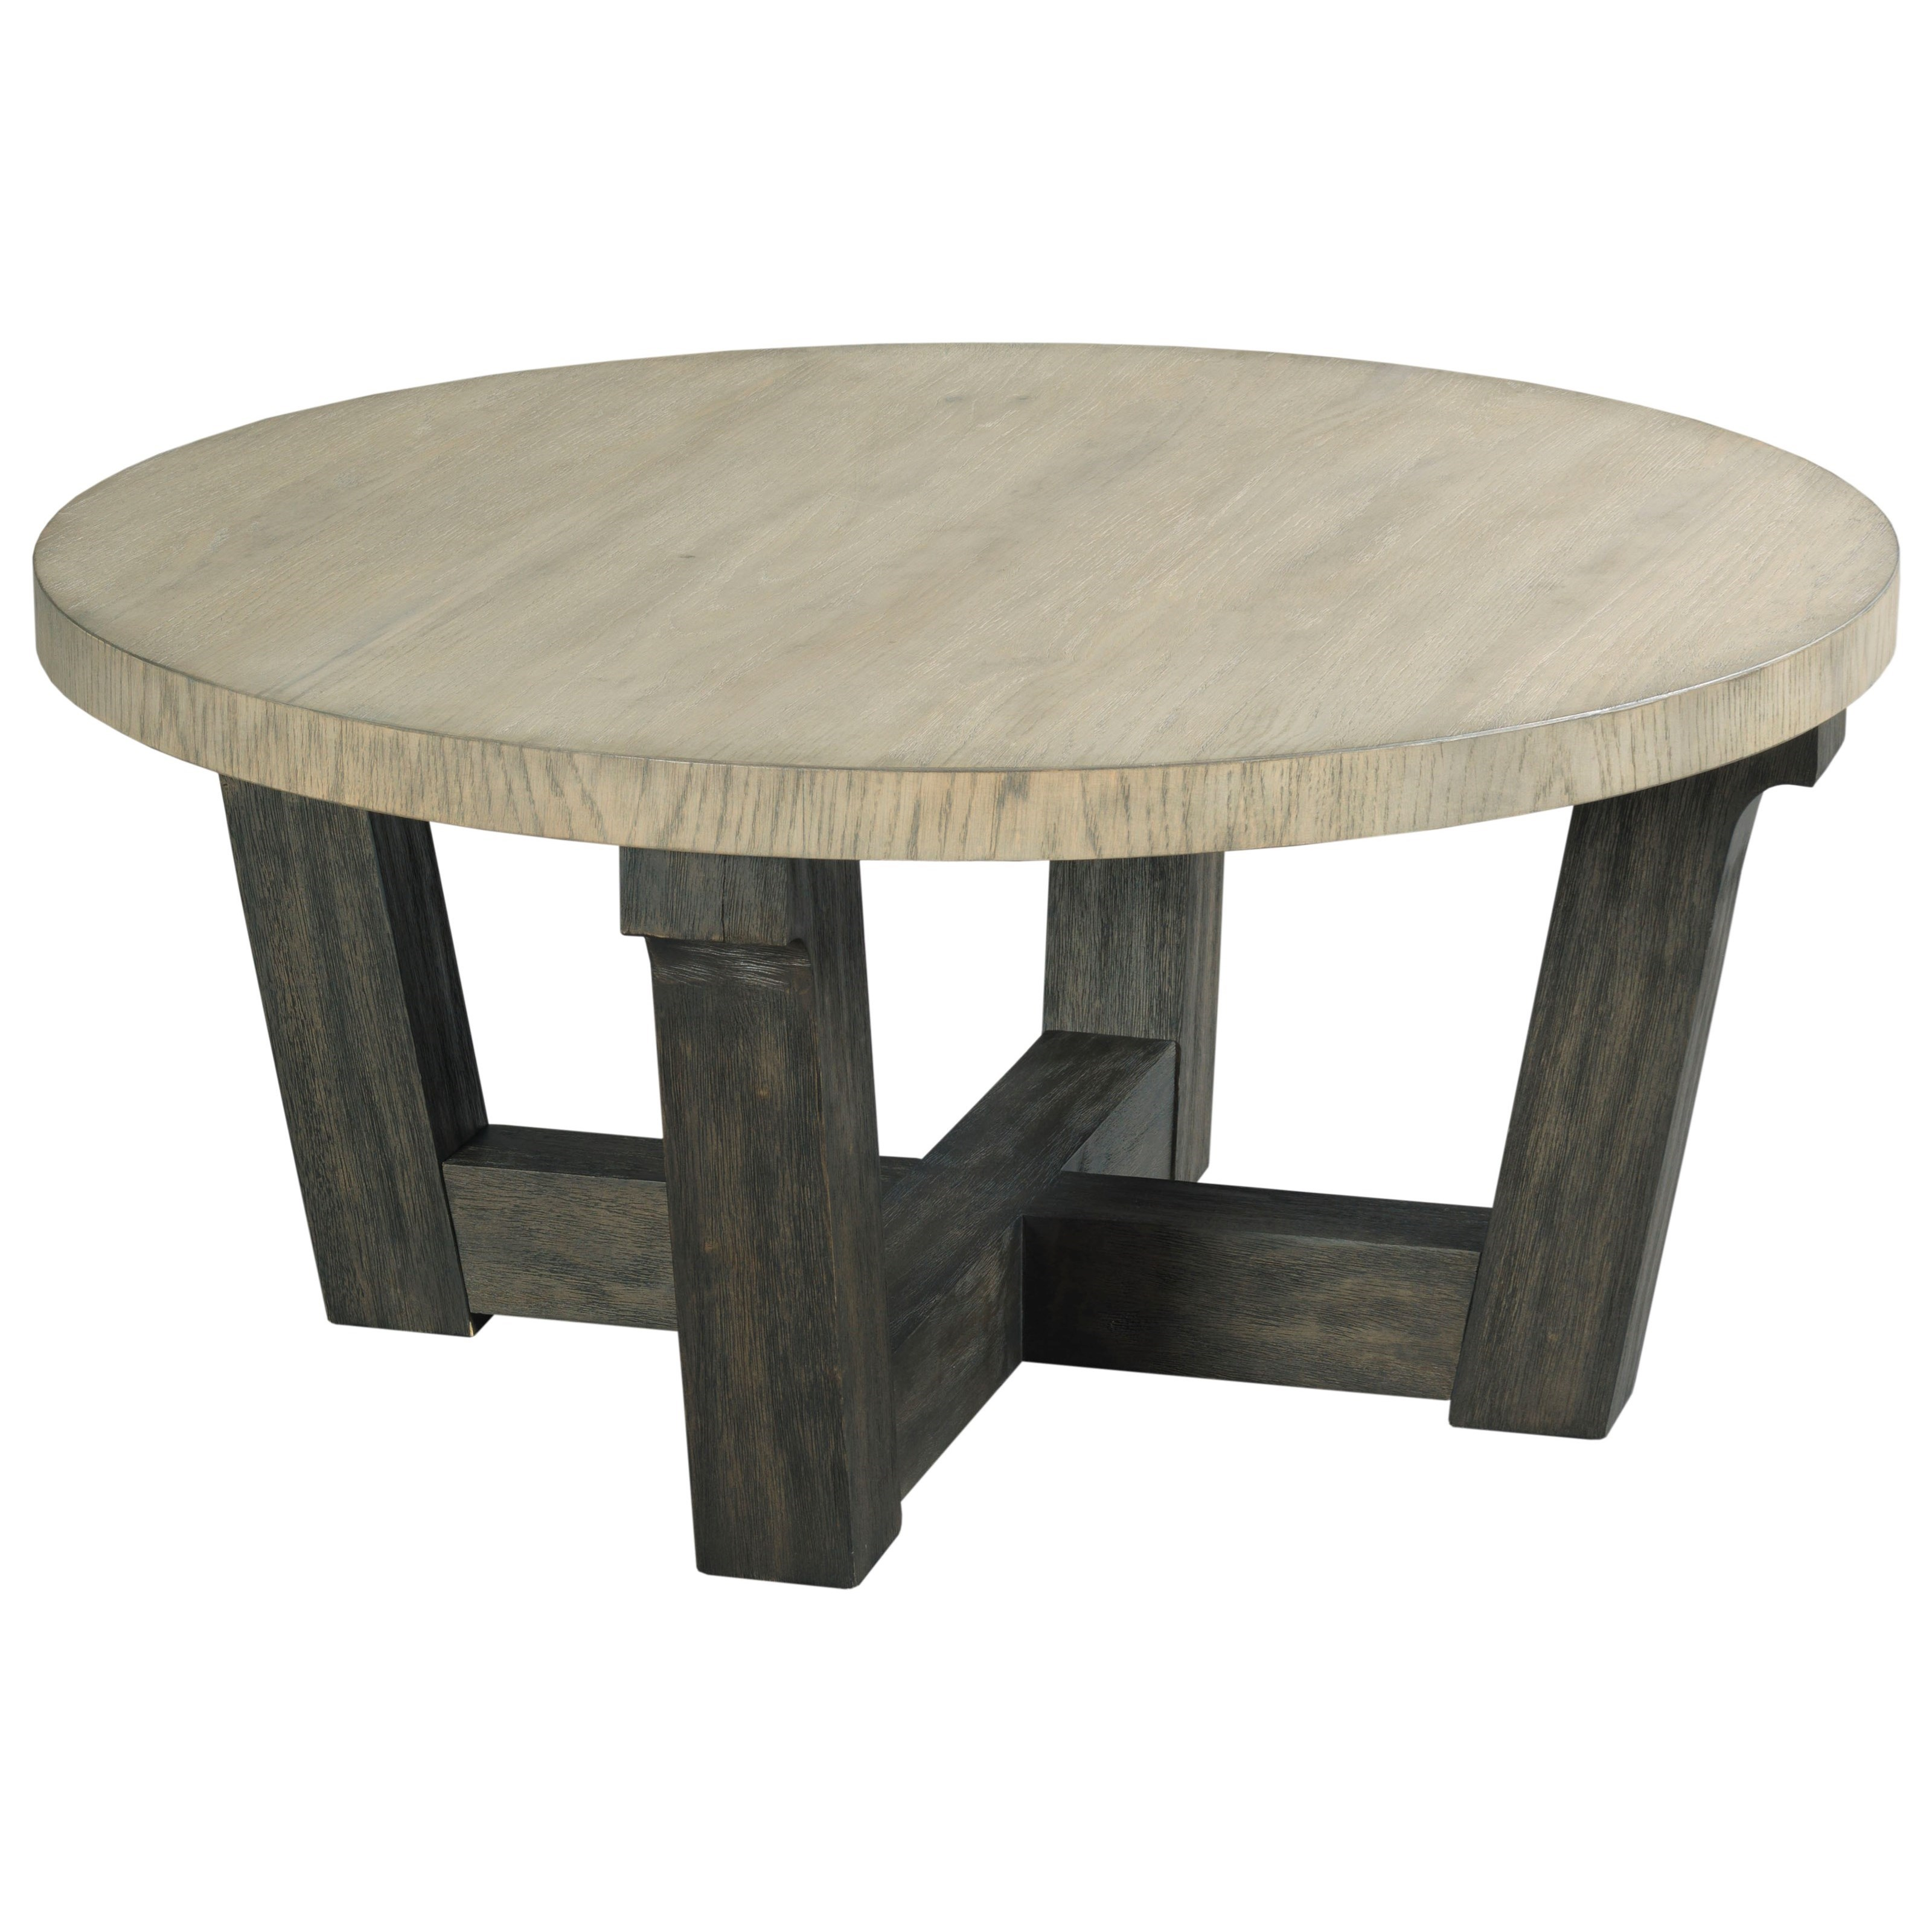 Hammary Beckham Round Cocktail Table - Item Number: 797-911